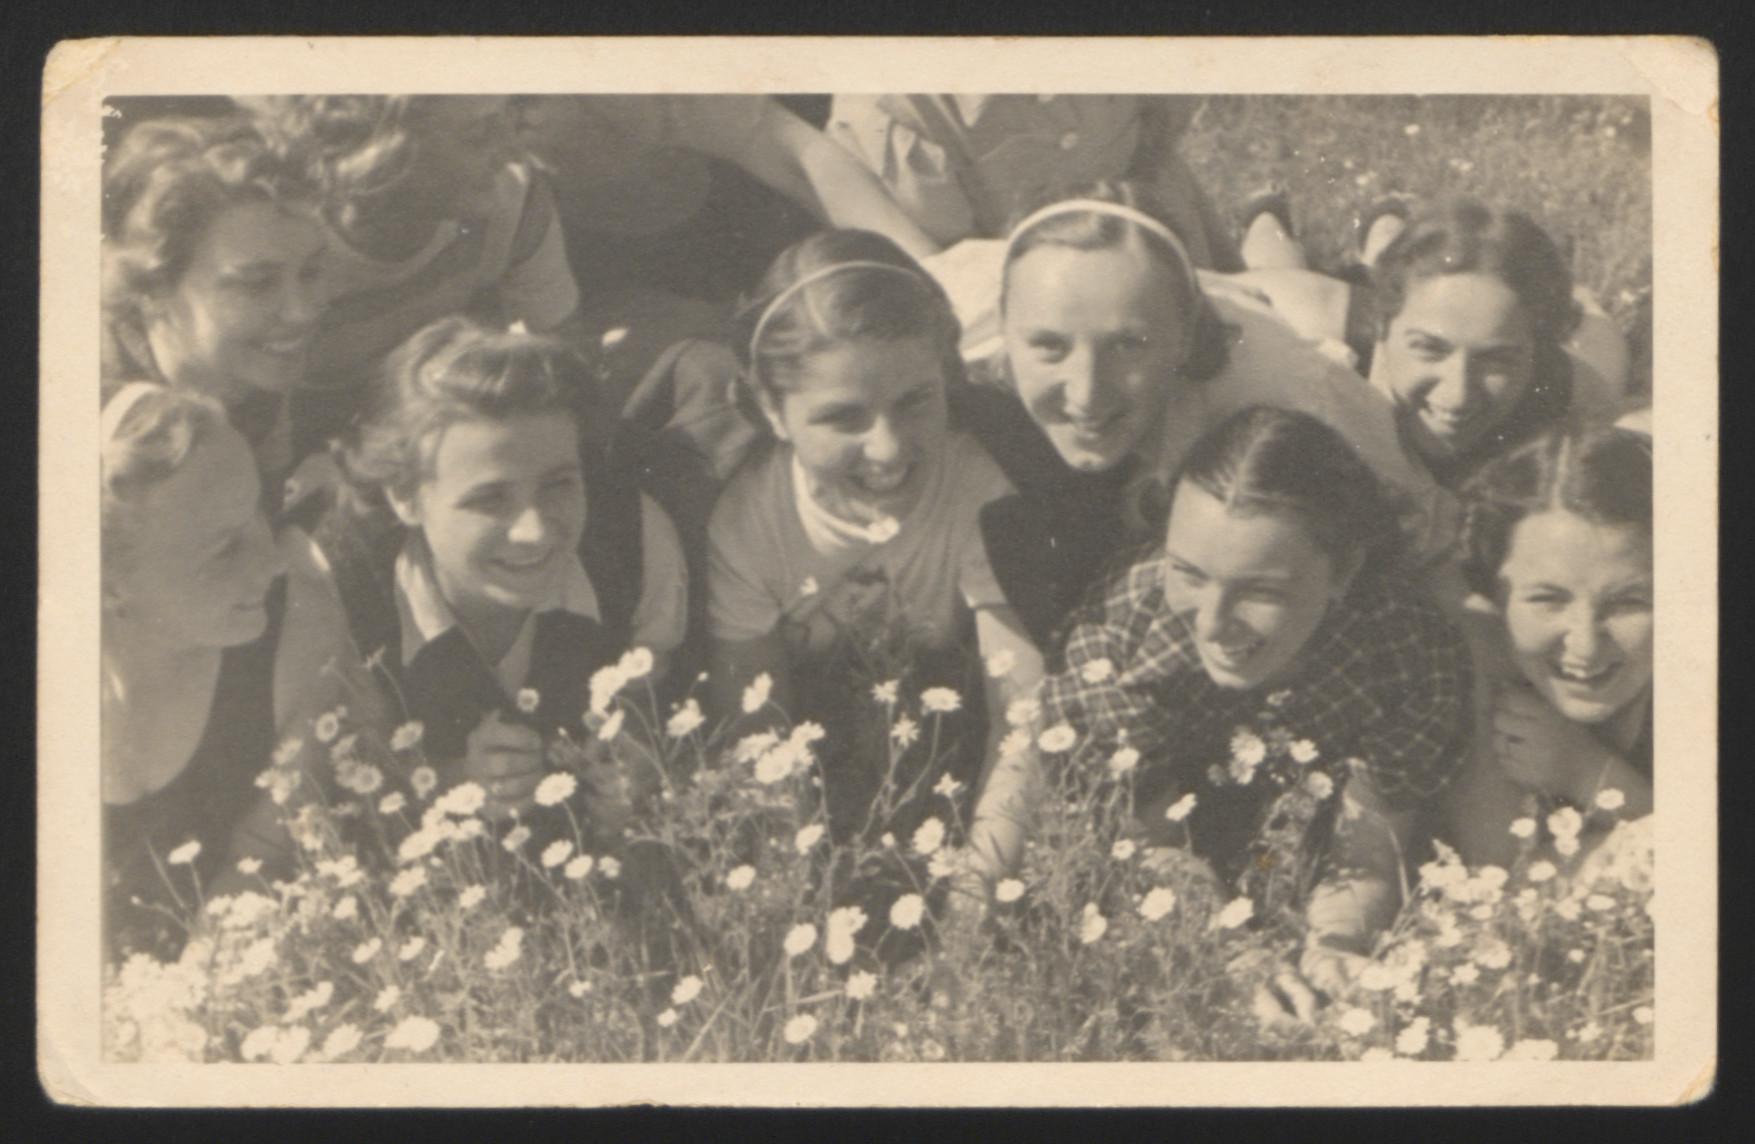 """Girls attending the School of Physical Education """"CIF"""" in Warsaw pose for a photograph while lying on a field.   Among those pictured is Rozka Pomeranz, donor's aunt (right corner)."""